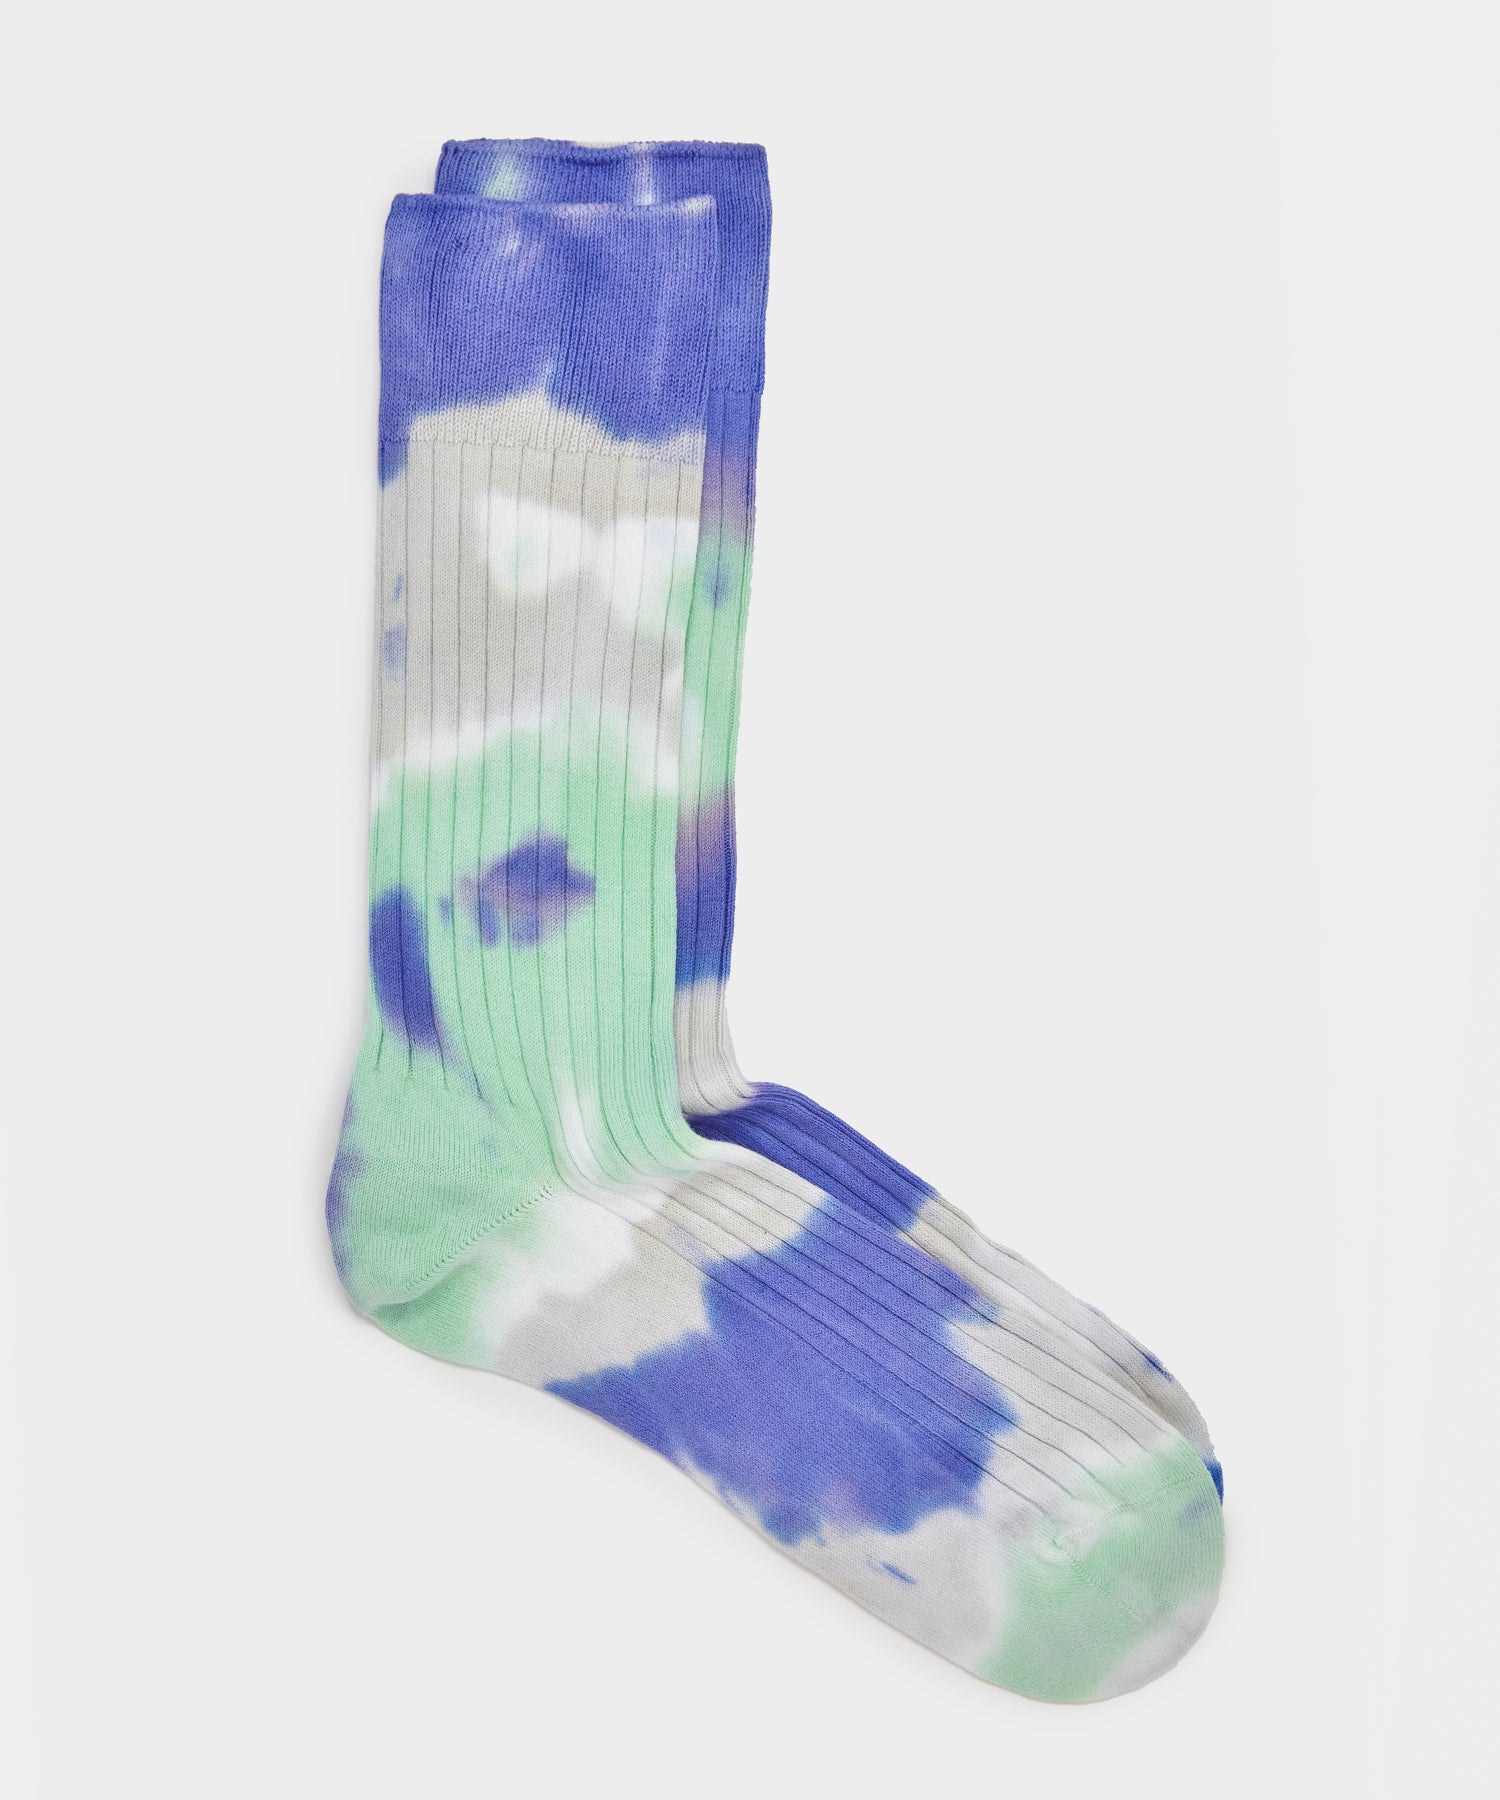 RoToTo Tie Dye Formal Crew Socks Slate Blue/Minty Green